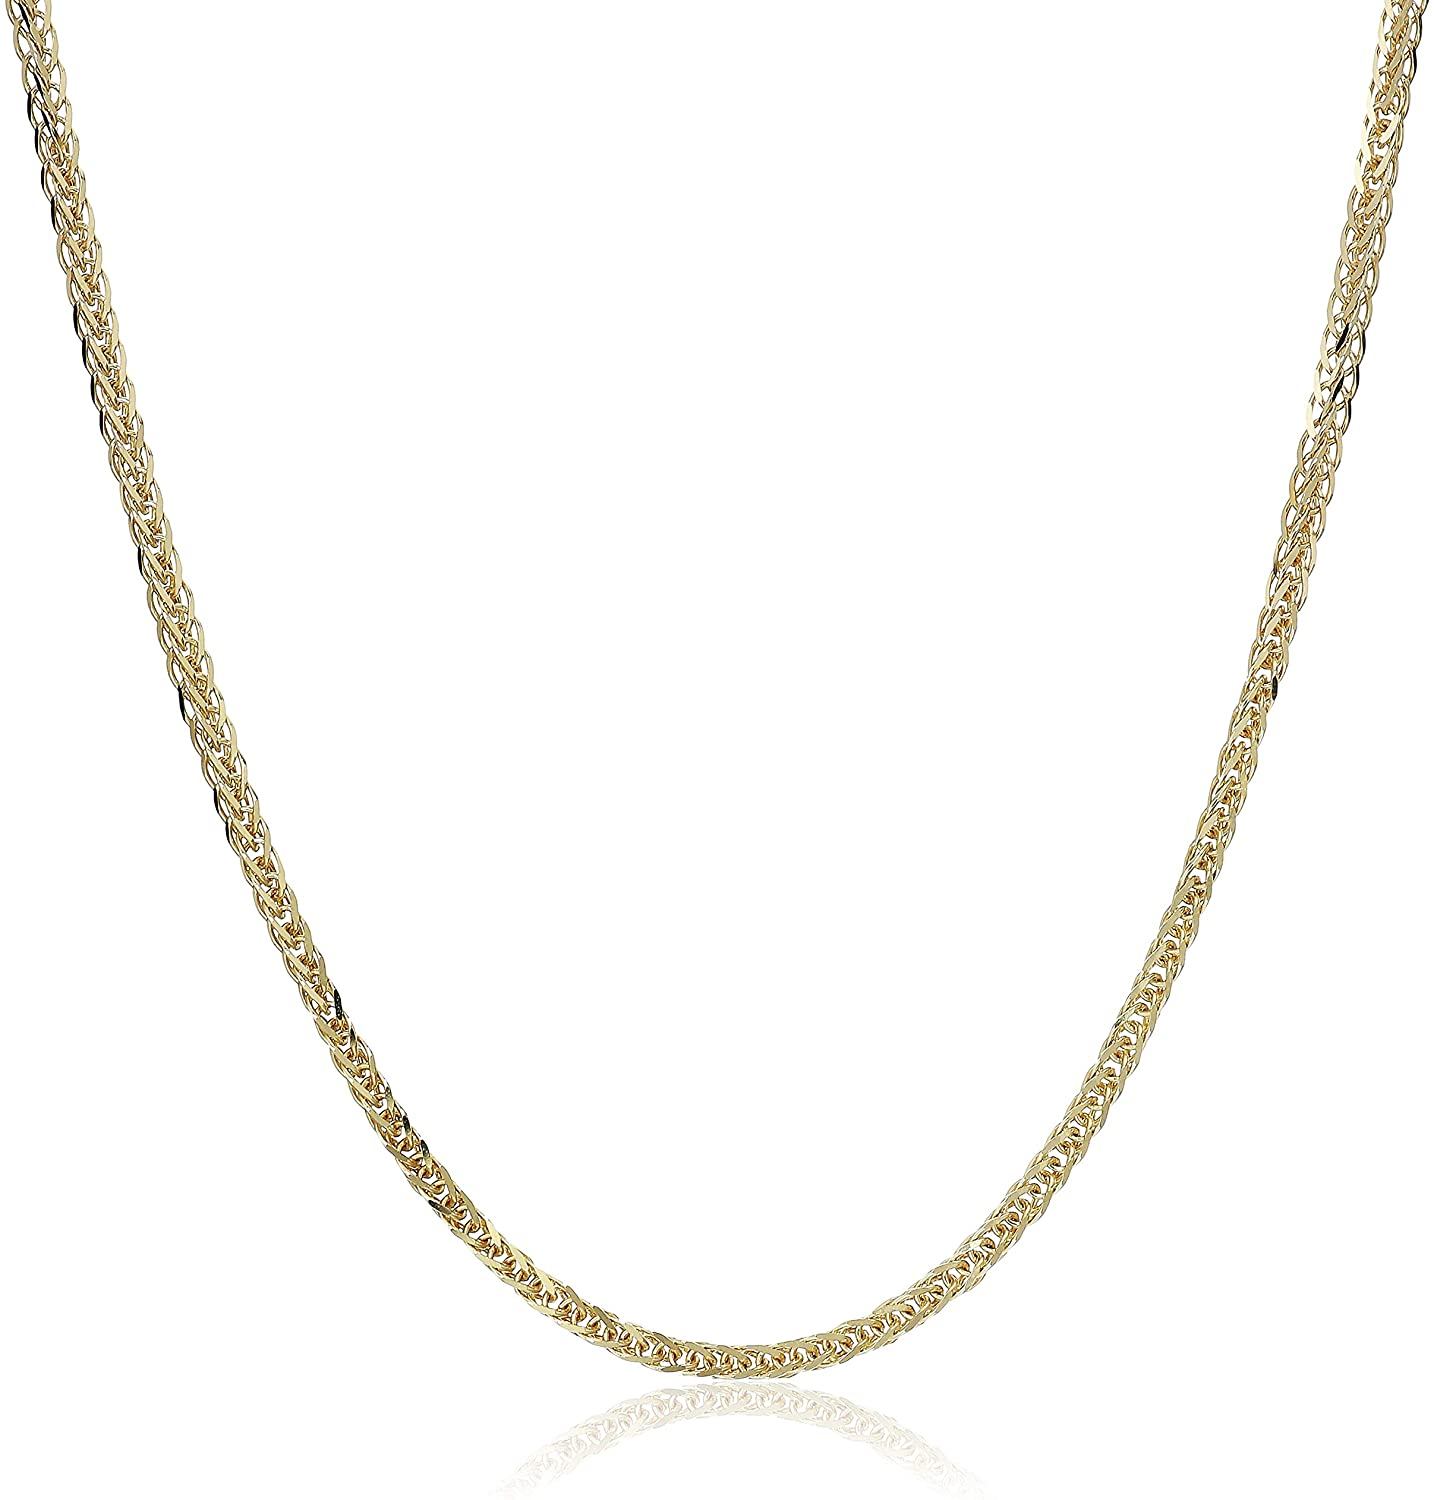 MCS Jewelry 14 Karat Yellow OR White Gold Square Wheat Chain Necklace 1.8mm (Length: 16